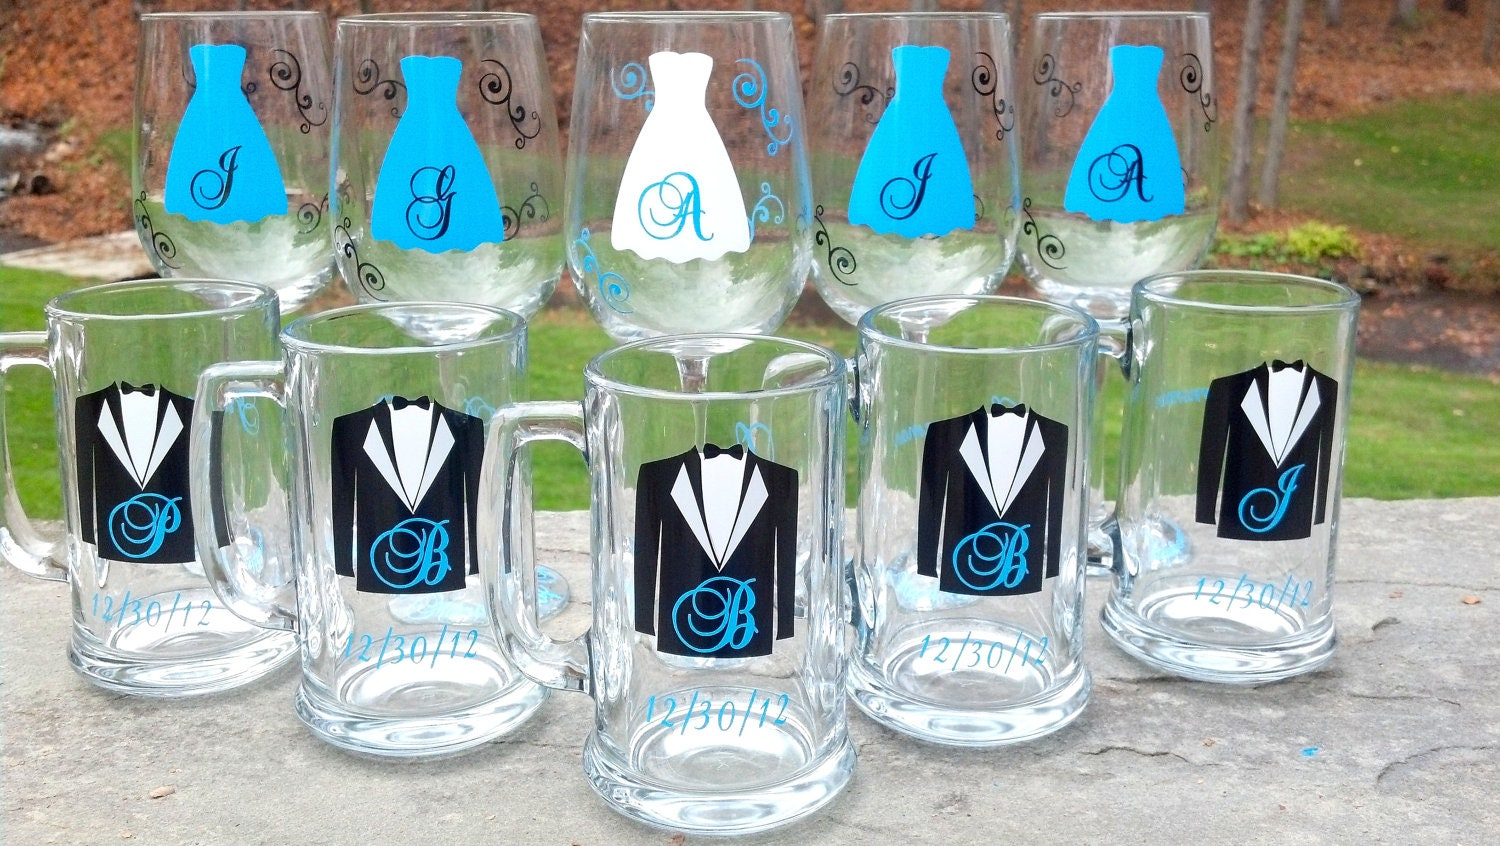 Wedding party glasses wine glasses and beer glasses.